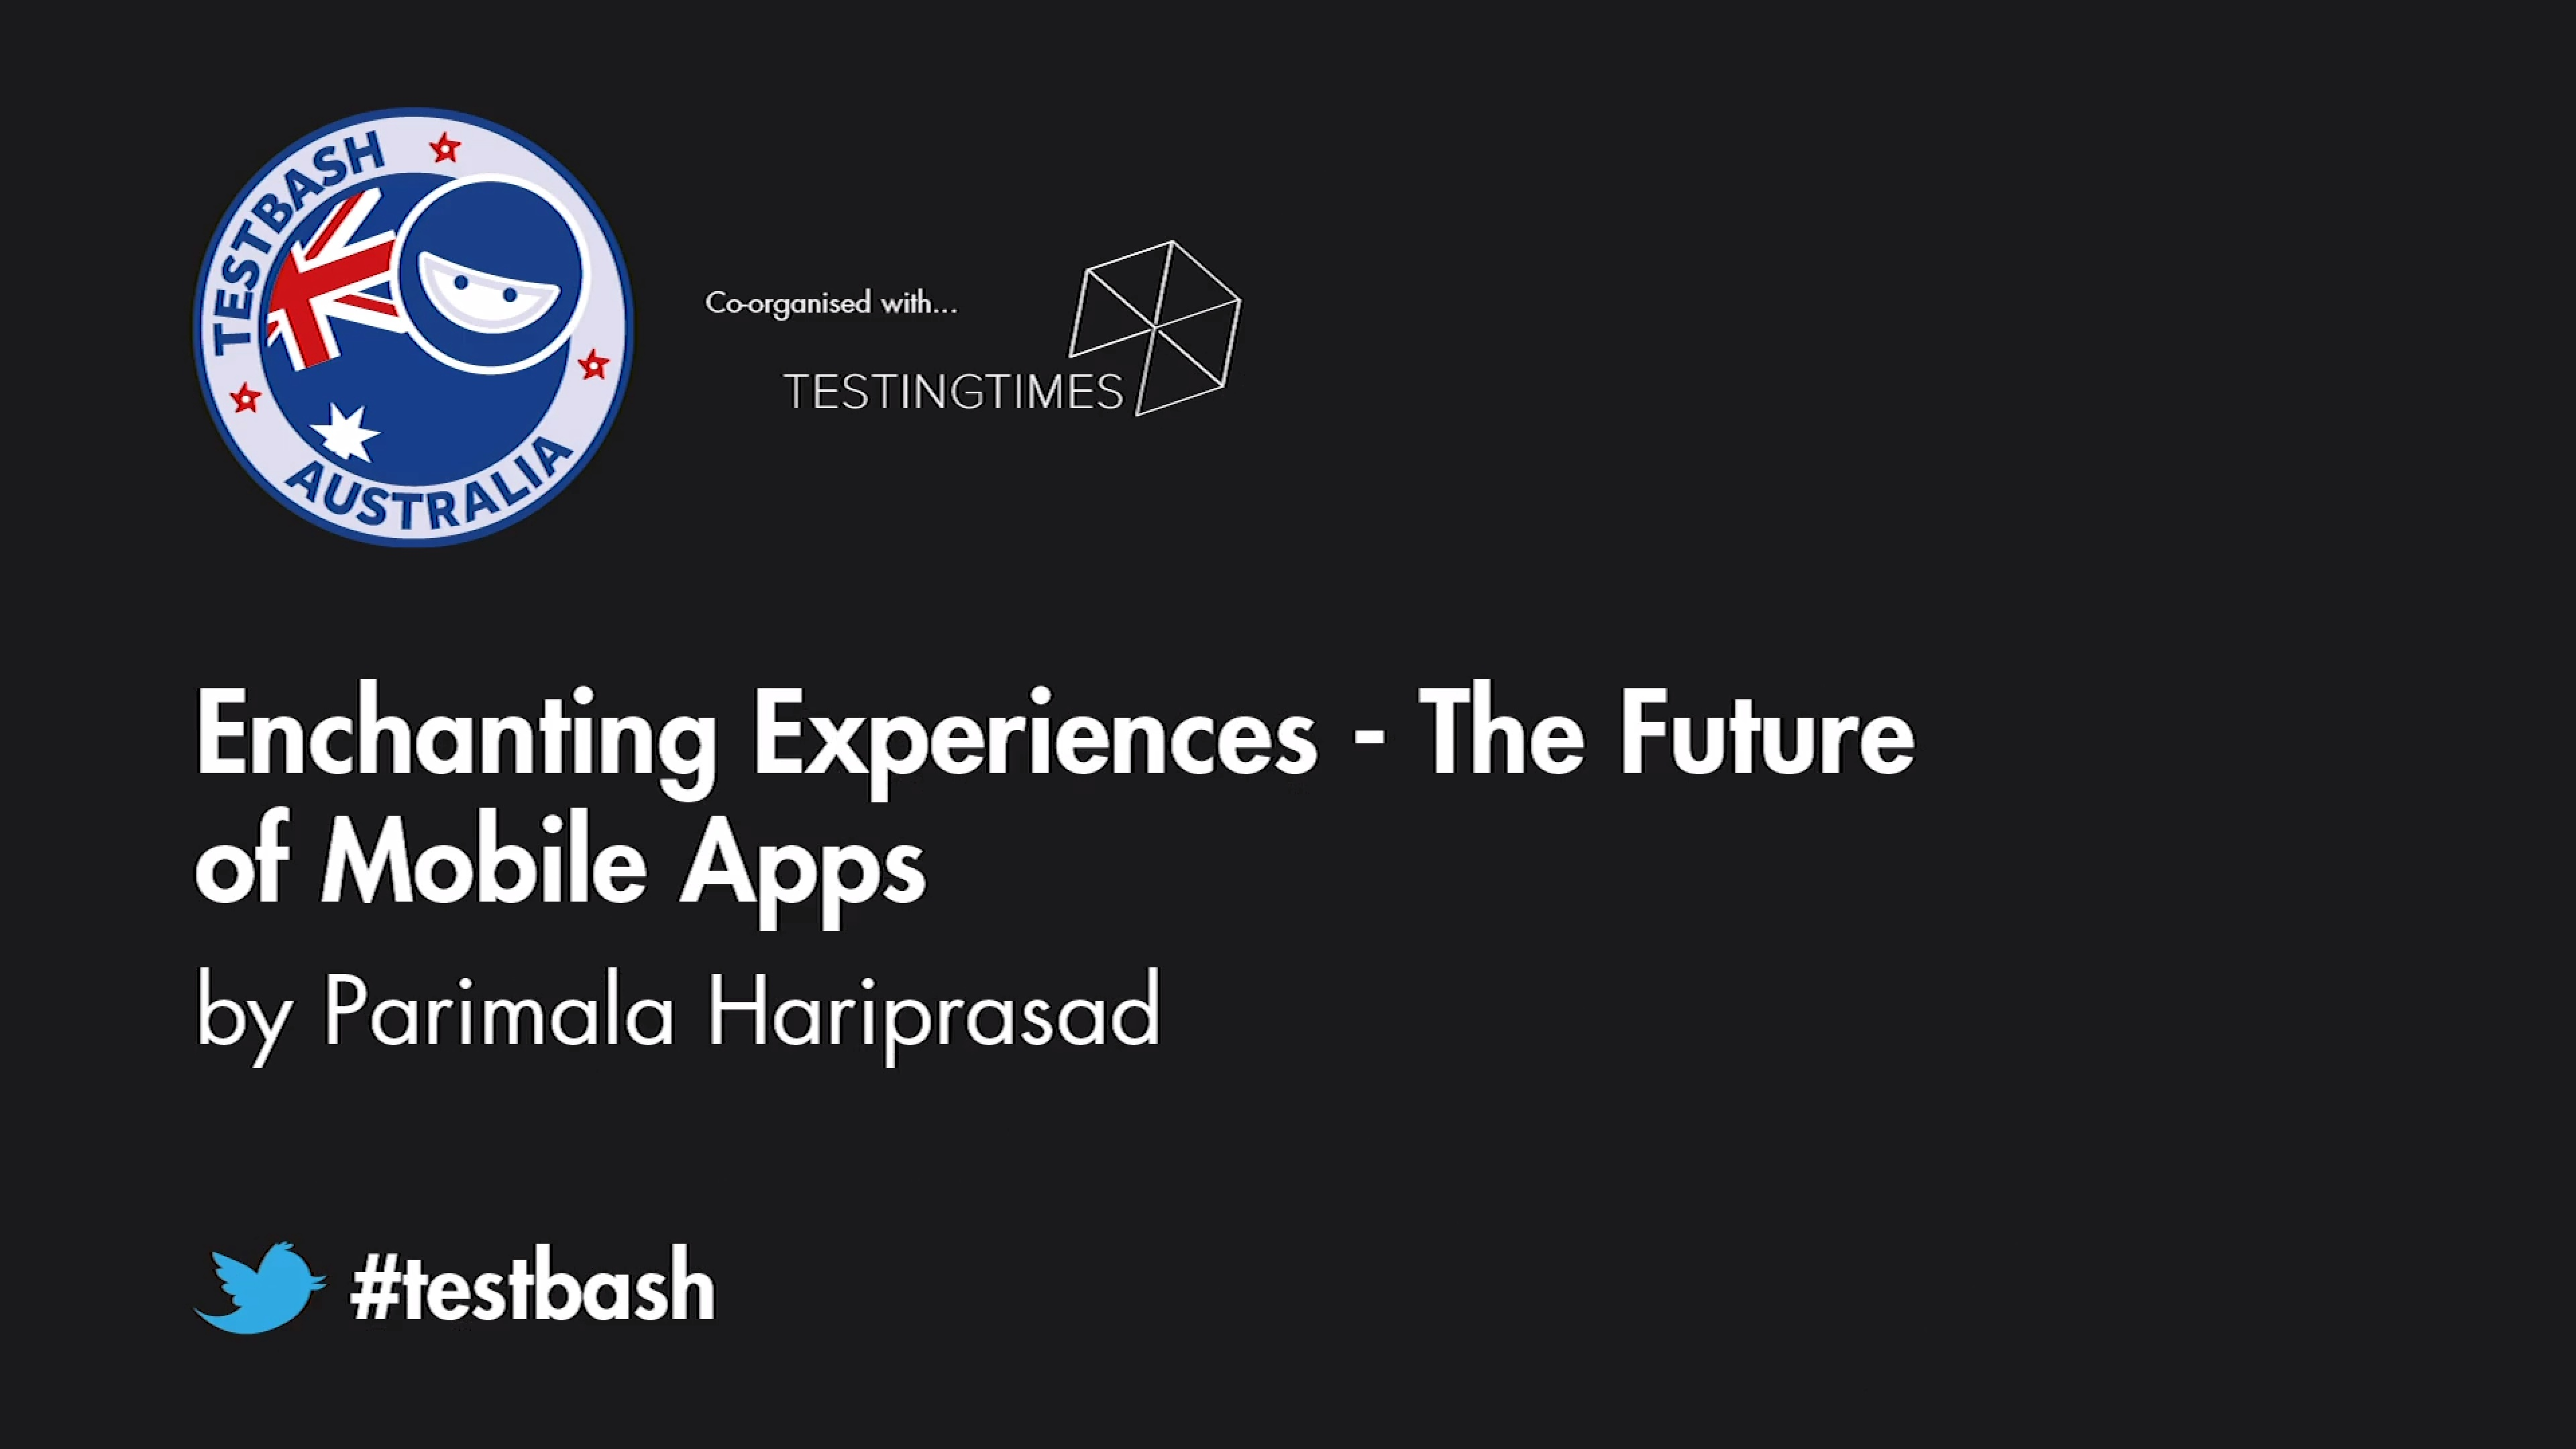 Enchanting Experiences: The Future Of Mobile Apps - Parimala Hariprasad